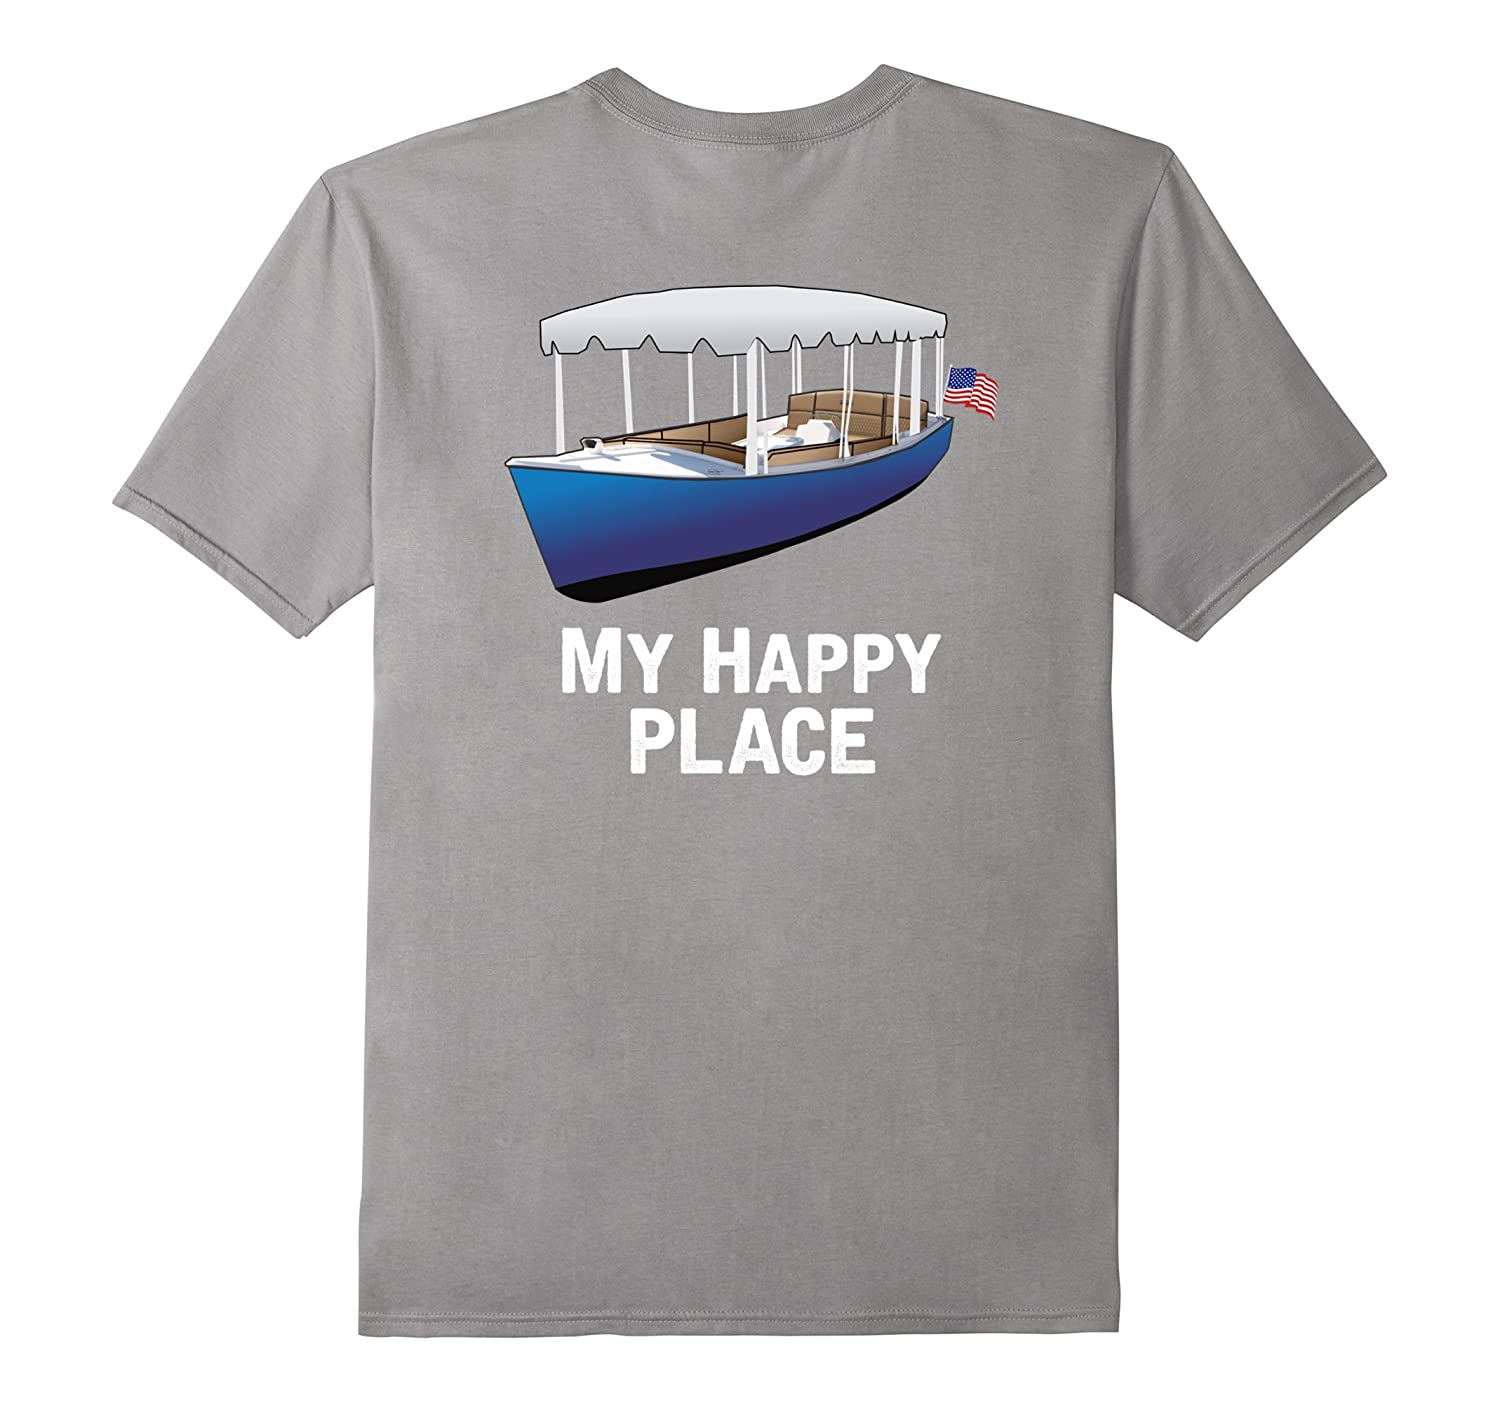 Duffy Boat Is My Happy Place T-Shirt Sailing Boating Yachts-Art